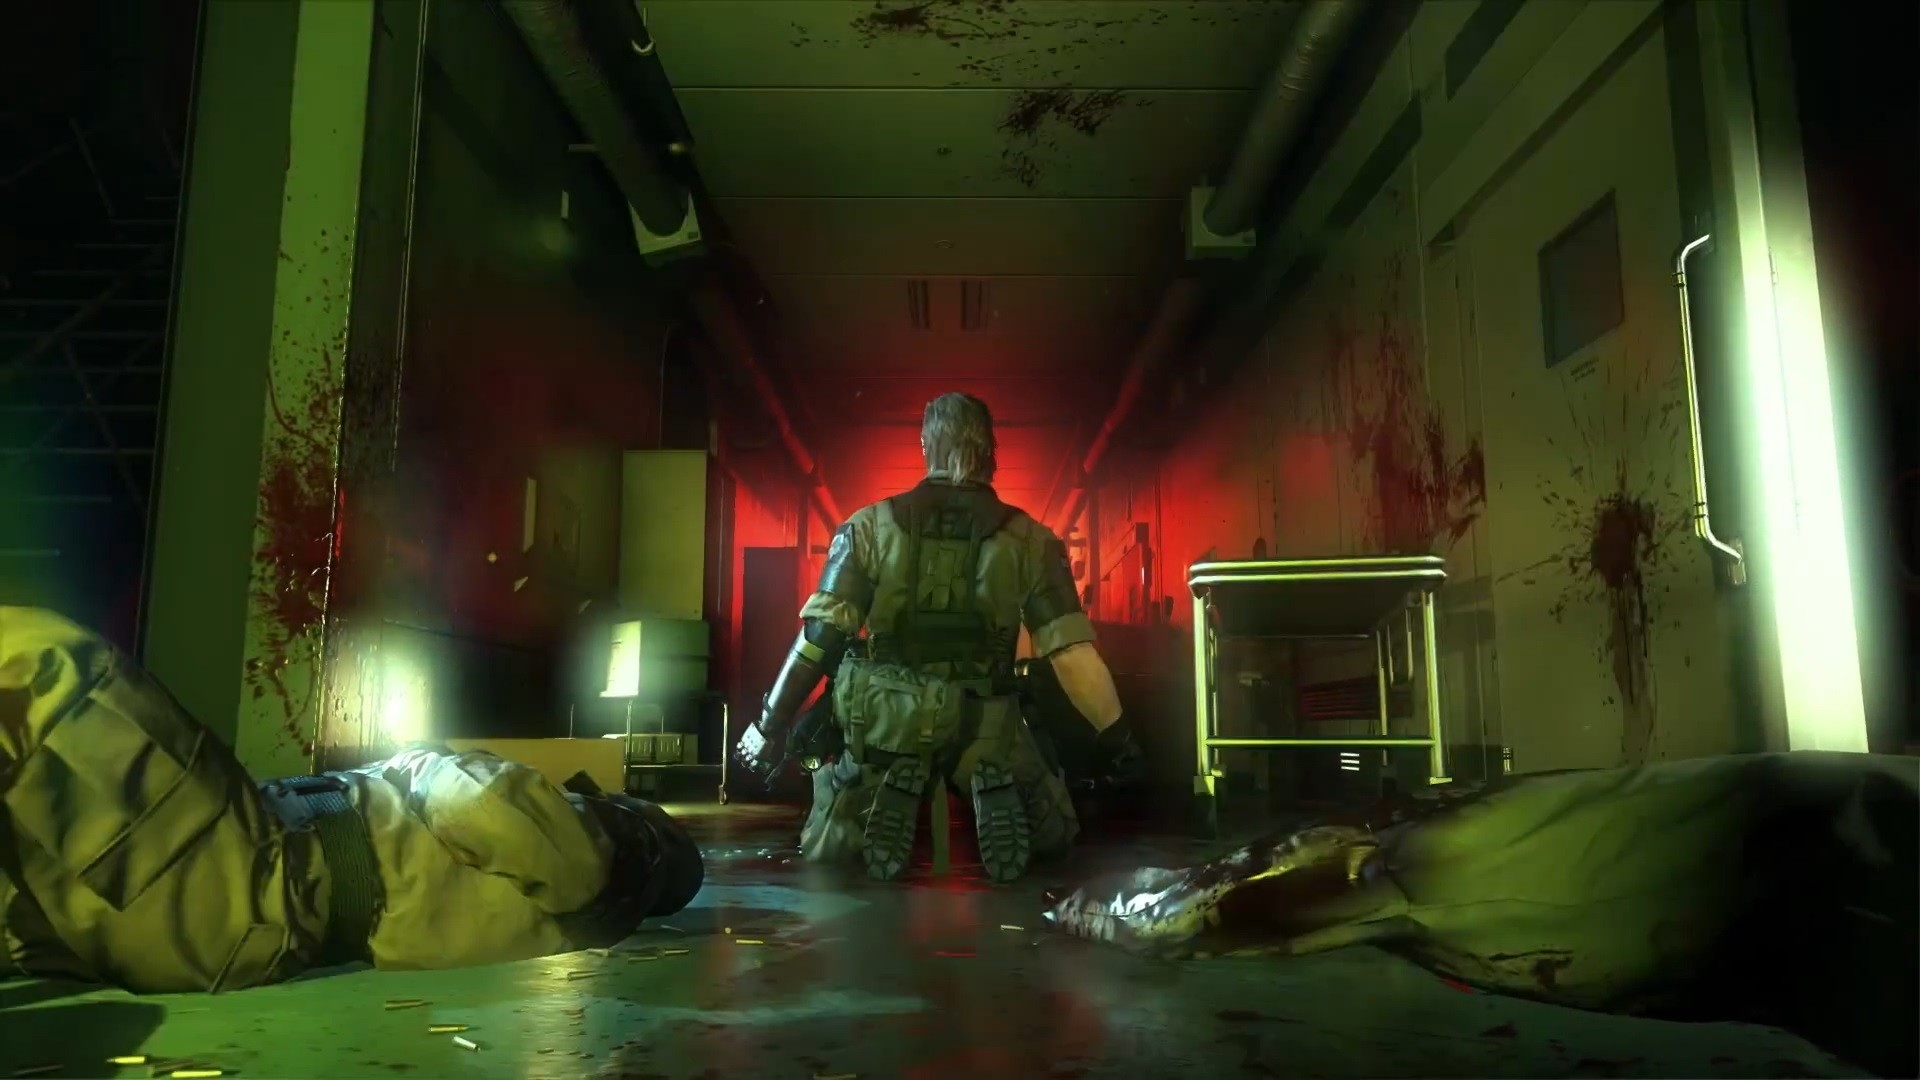 Metal Gear Solid V: The Phantom Pain's E3 trailer is as barmy as you'd hope